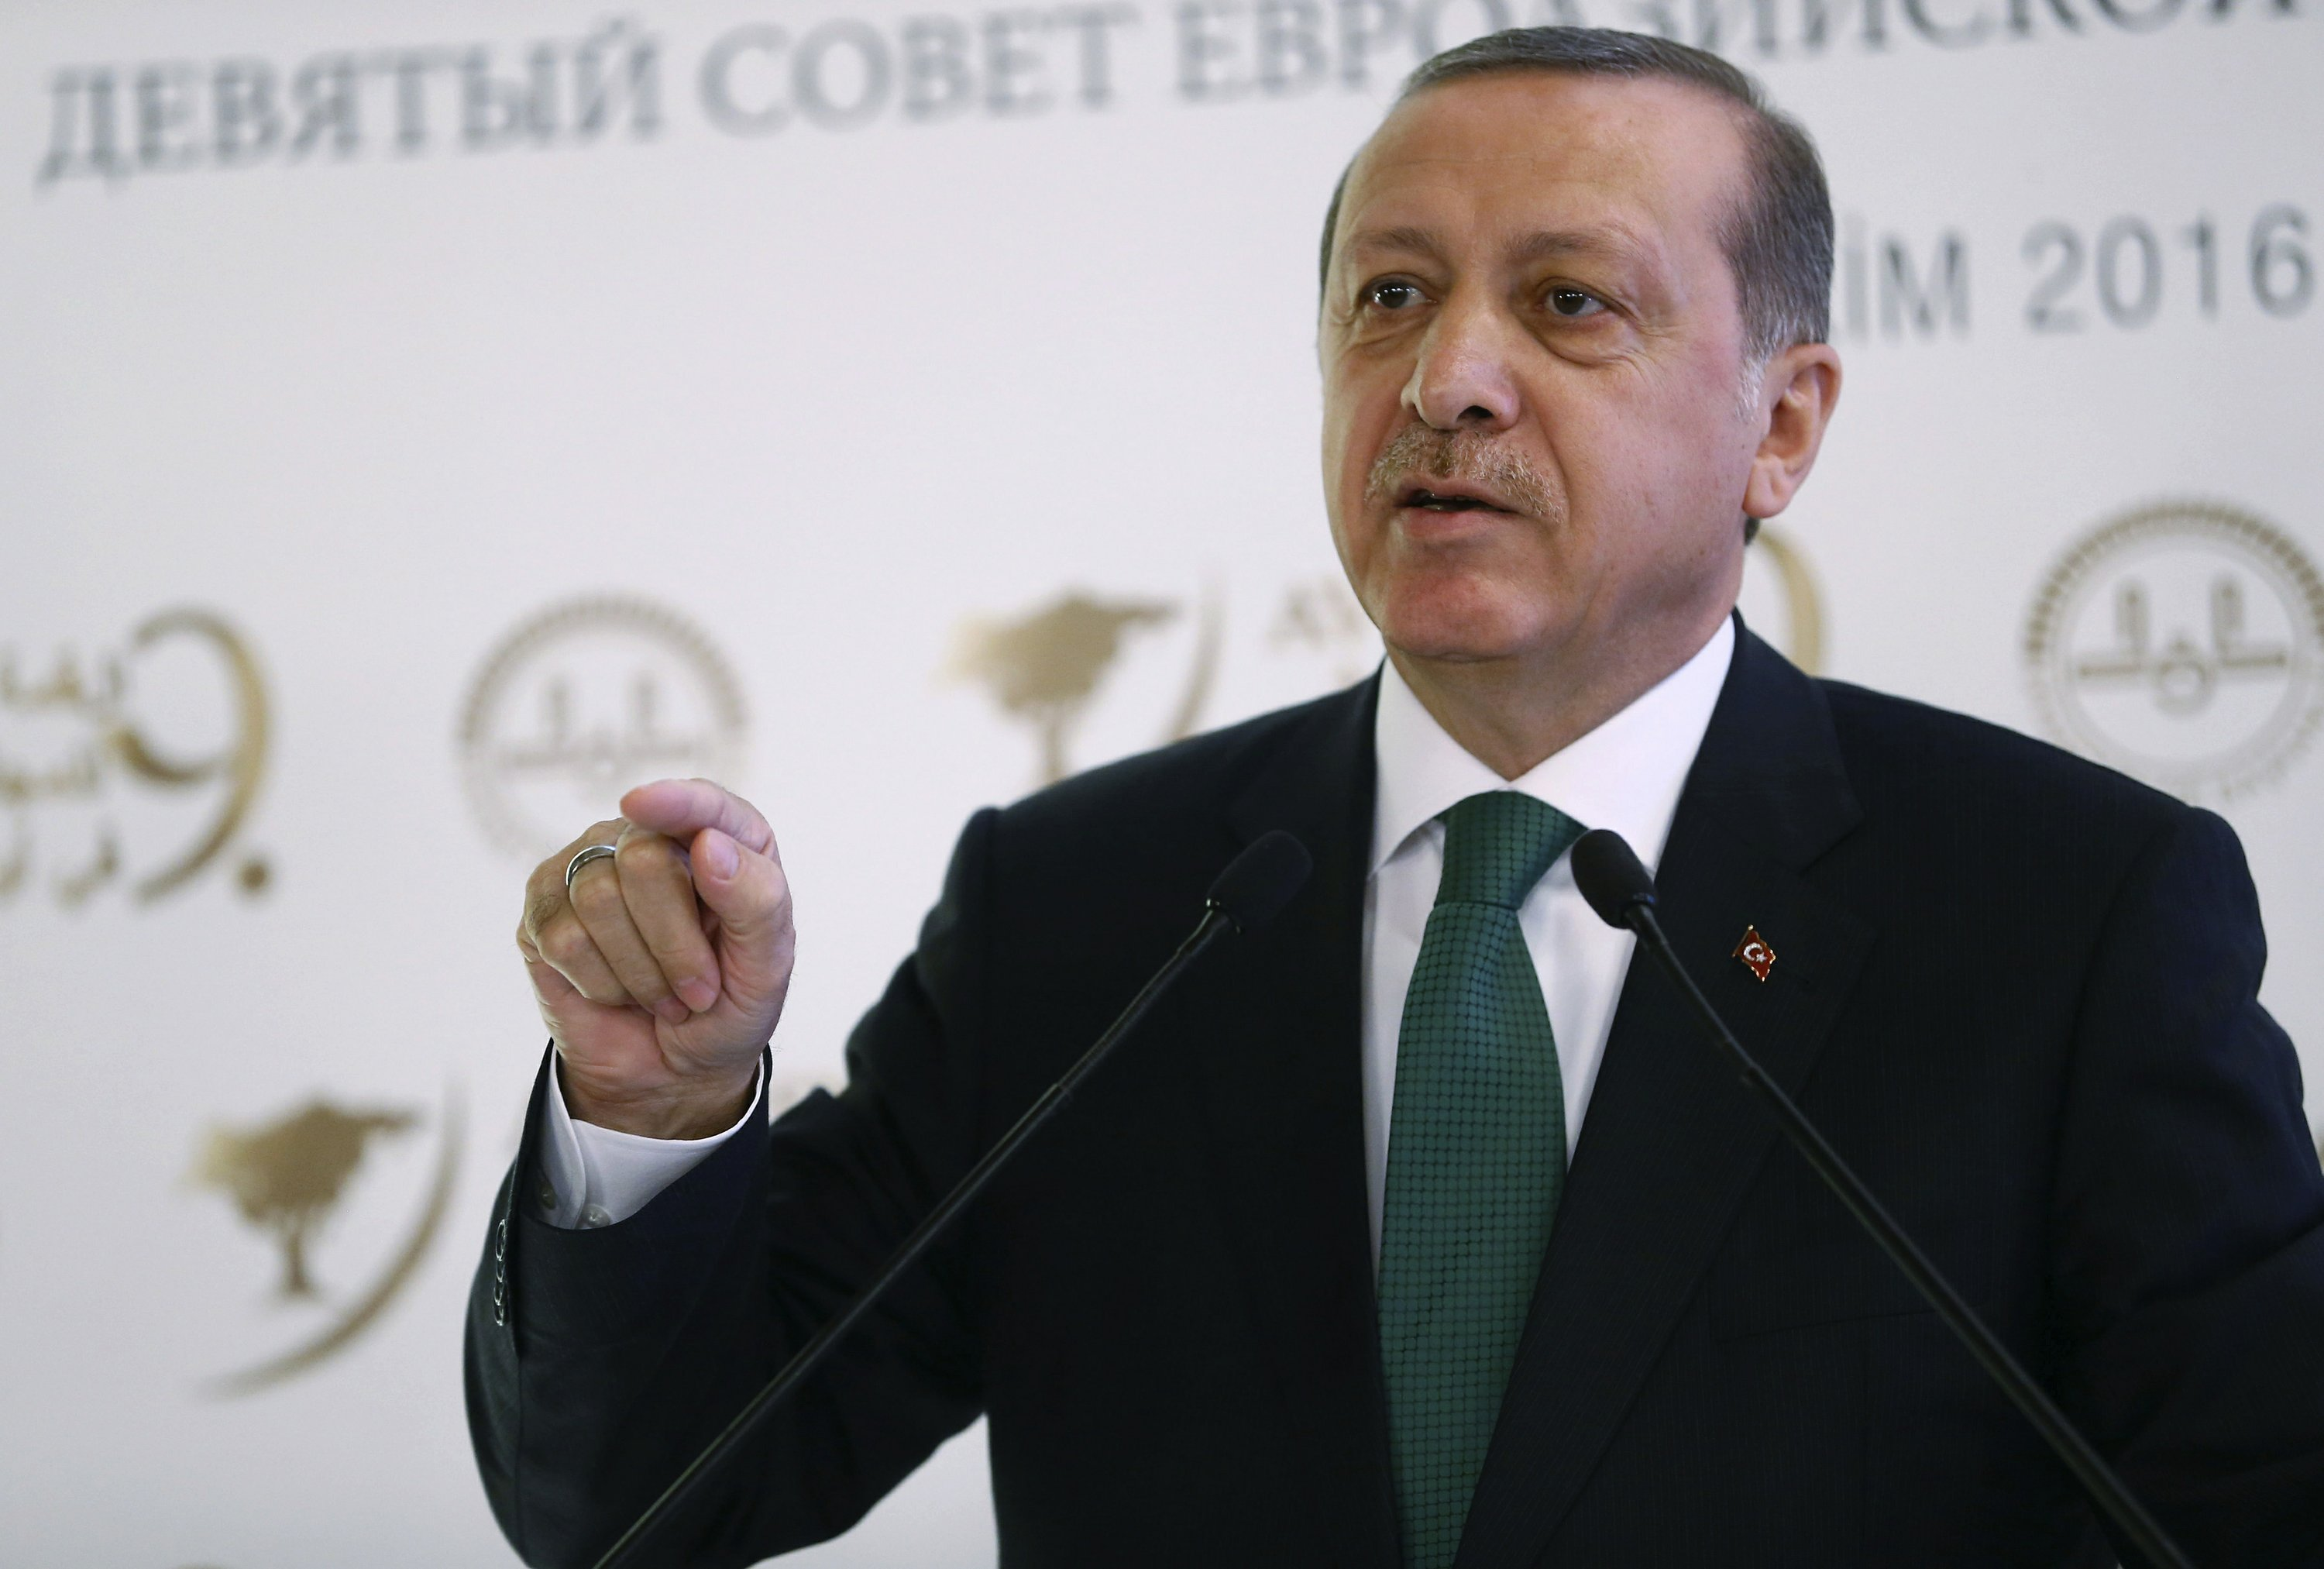 Turkey's president tells Iraqi leader to 'know his place'